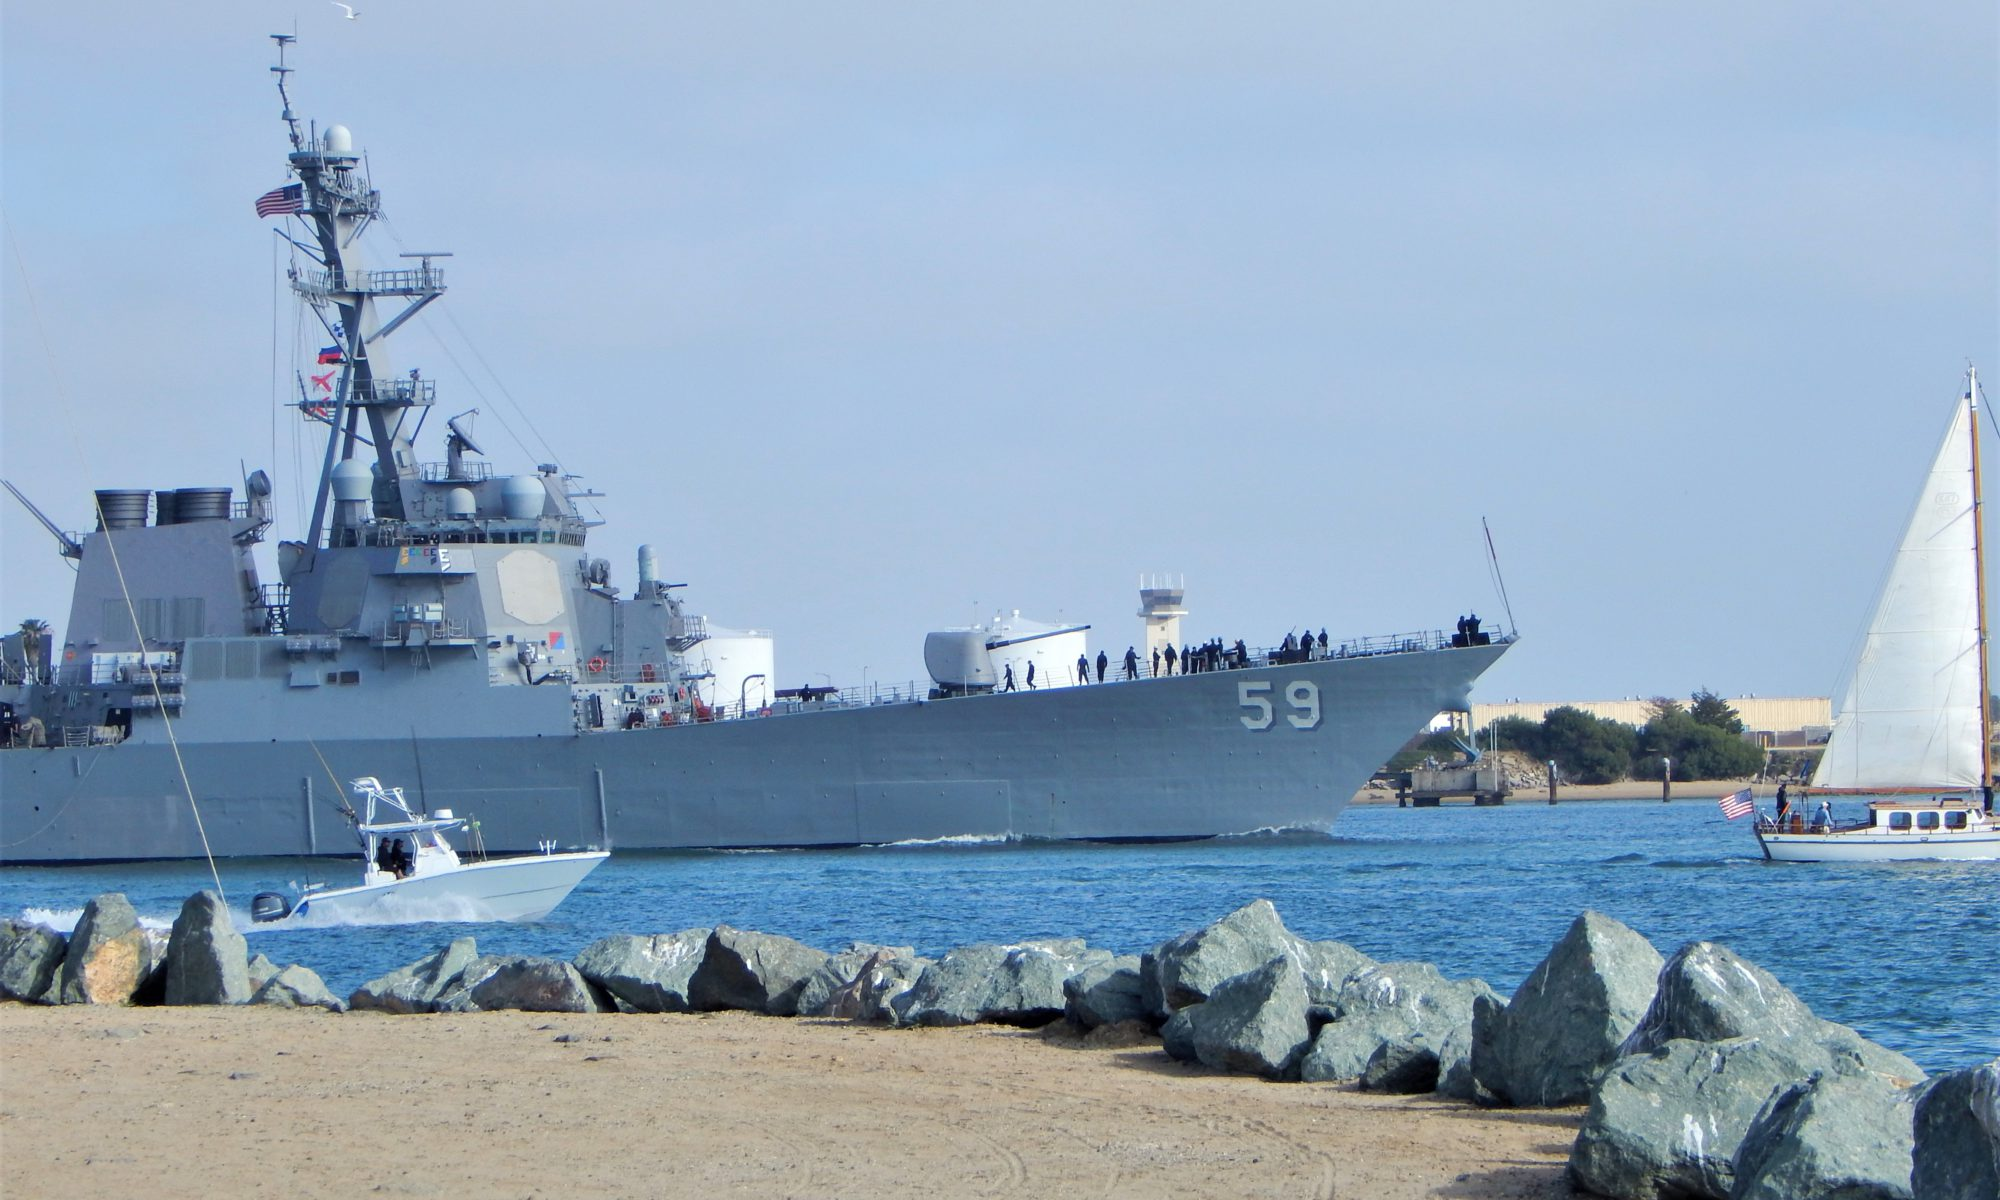 San Diego Bay Naval Ship Leaving